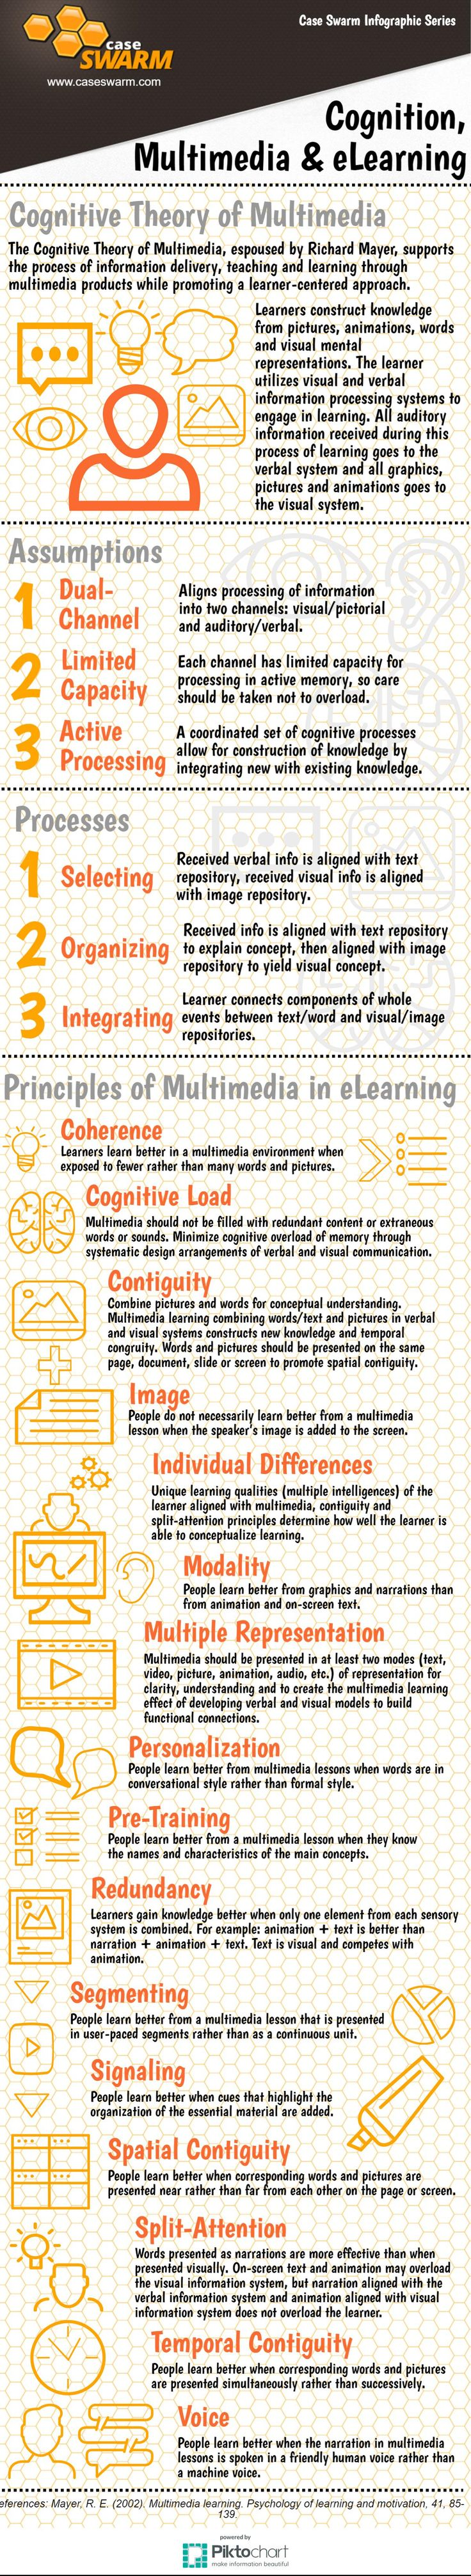 Infographic Cognition Multimedia and eLearning 91